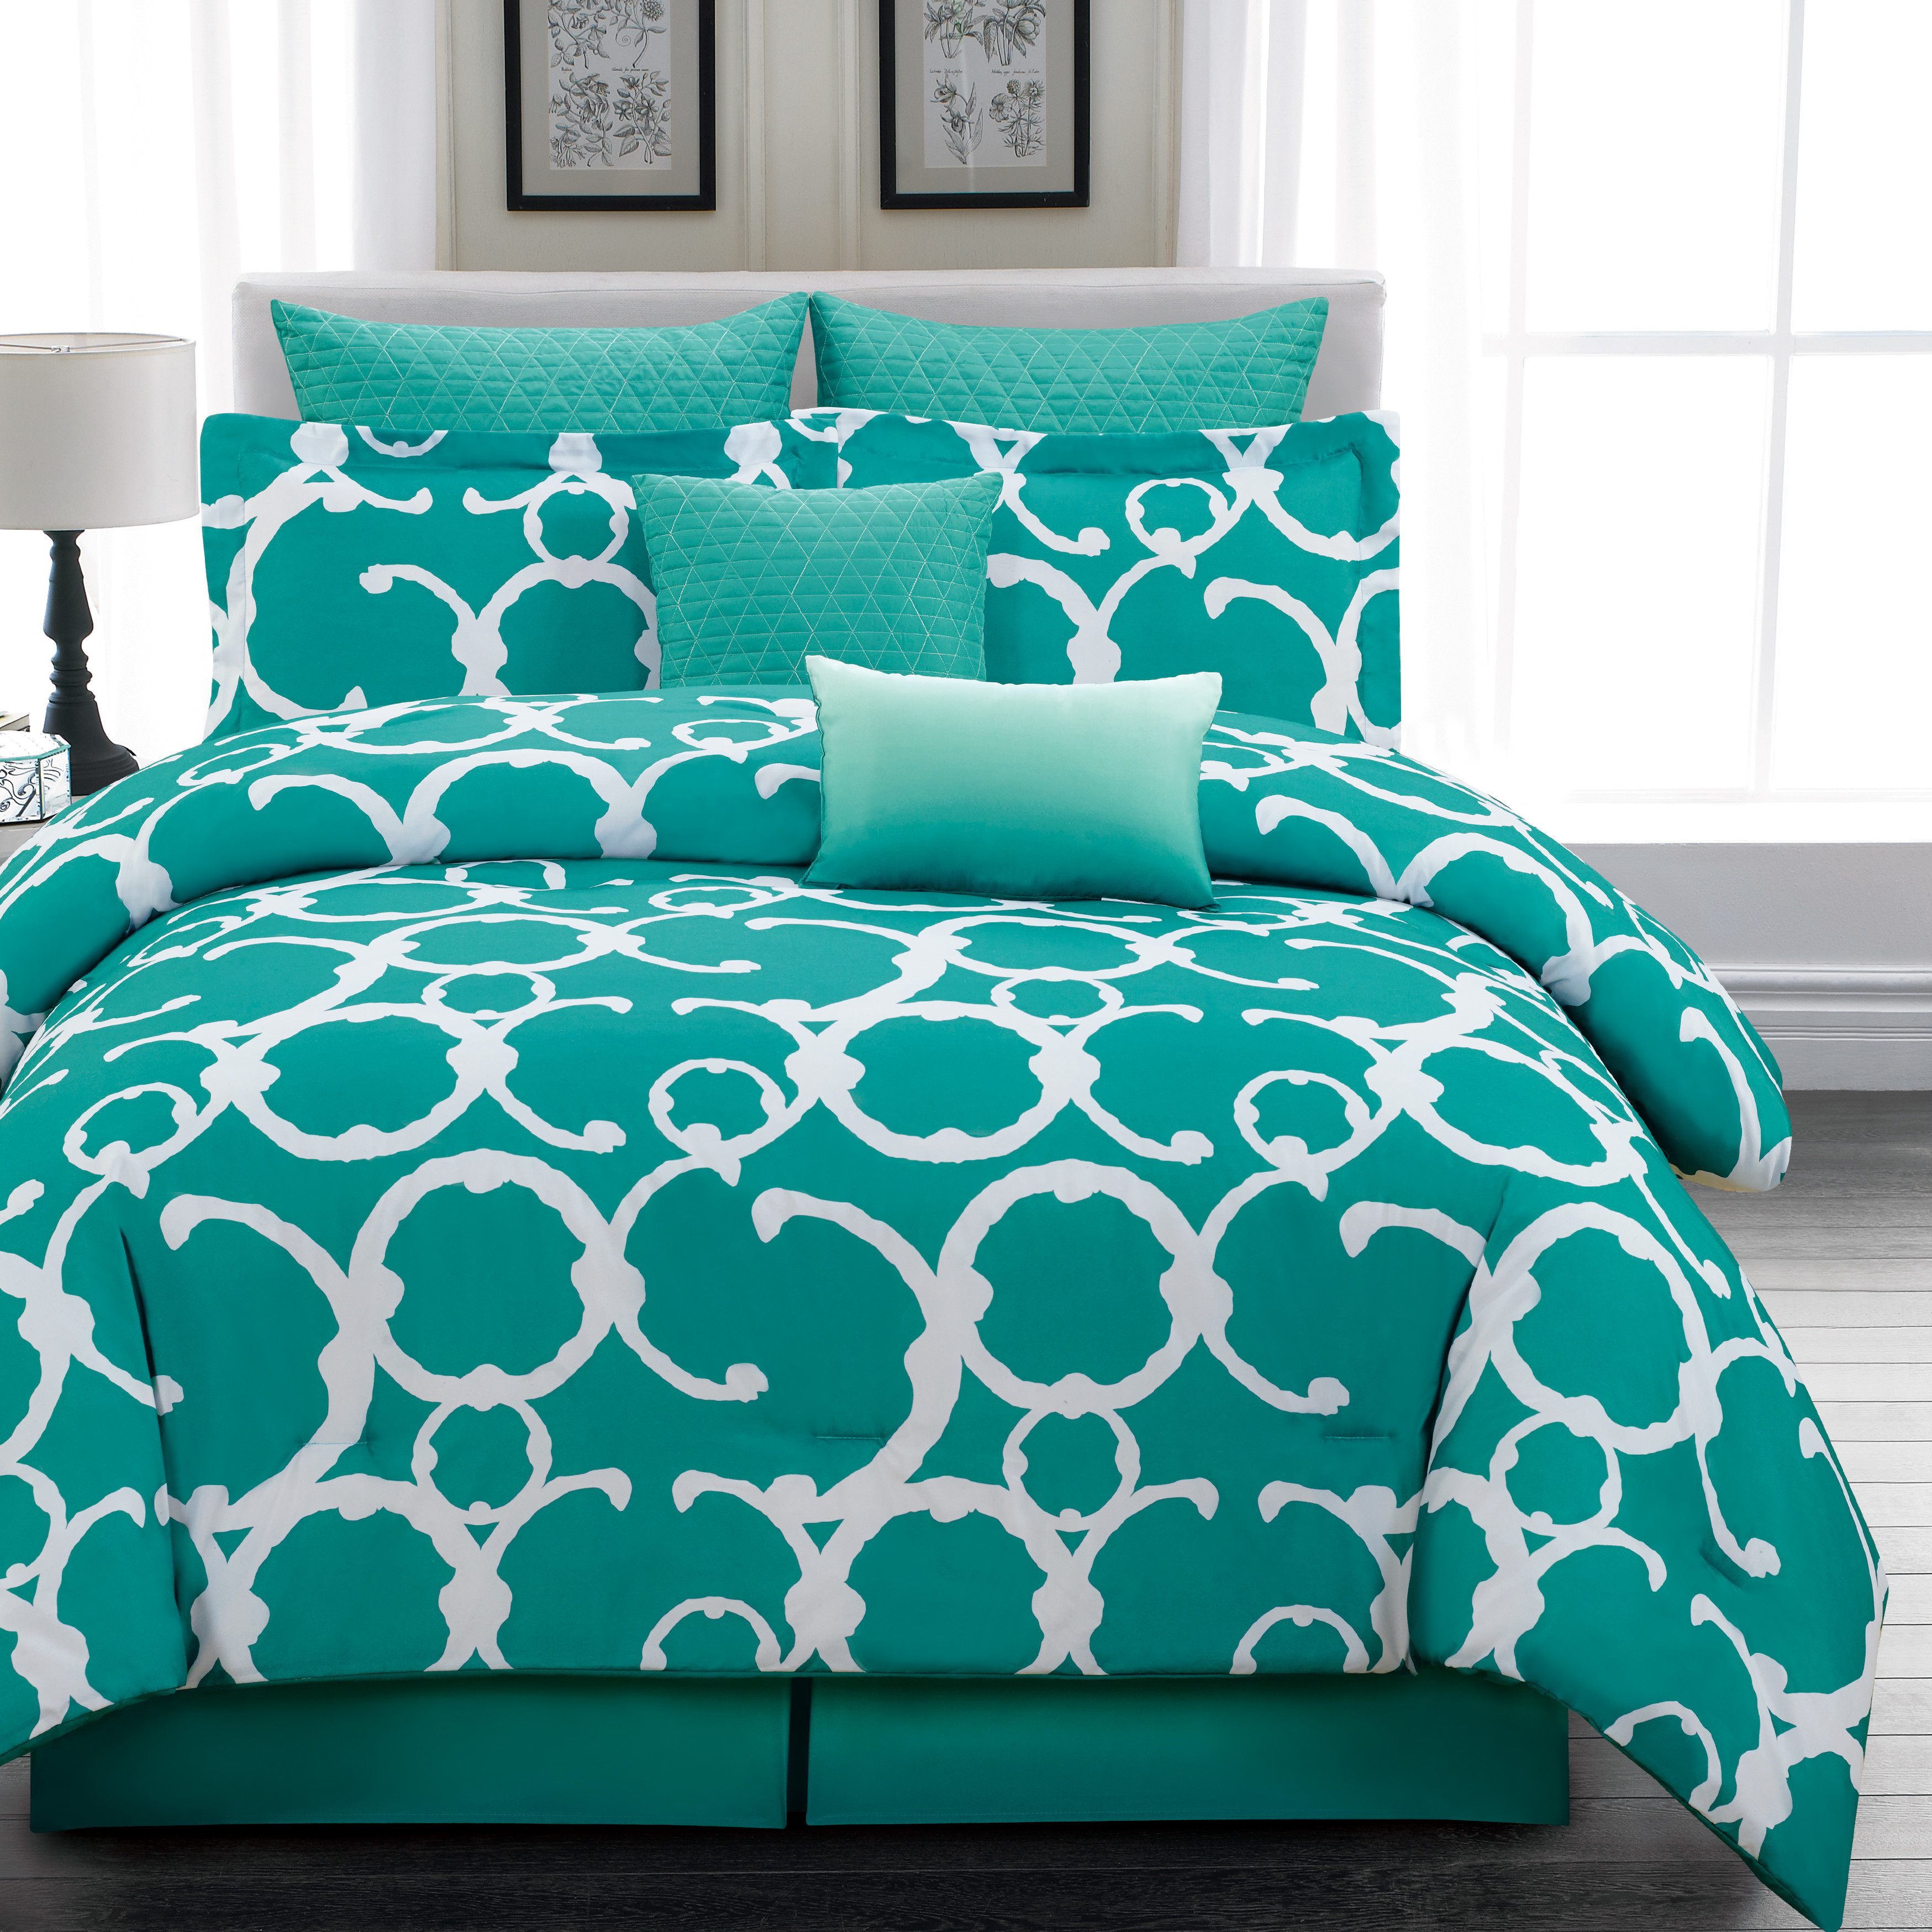 Best ideas about Wayfair Bedroom Sets . Save or Pin DR International Rhys 7 Piece forter Set & Reviews Now.